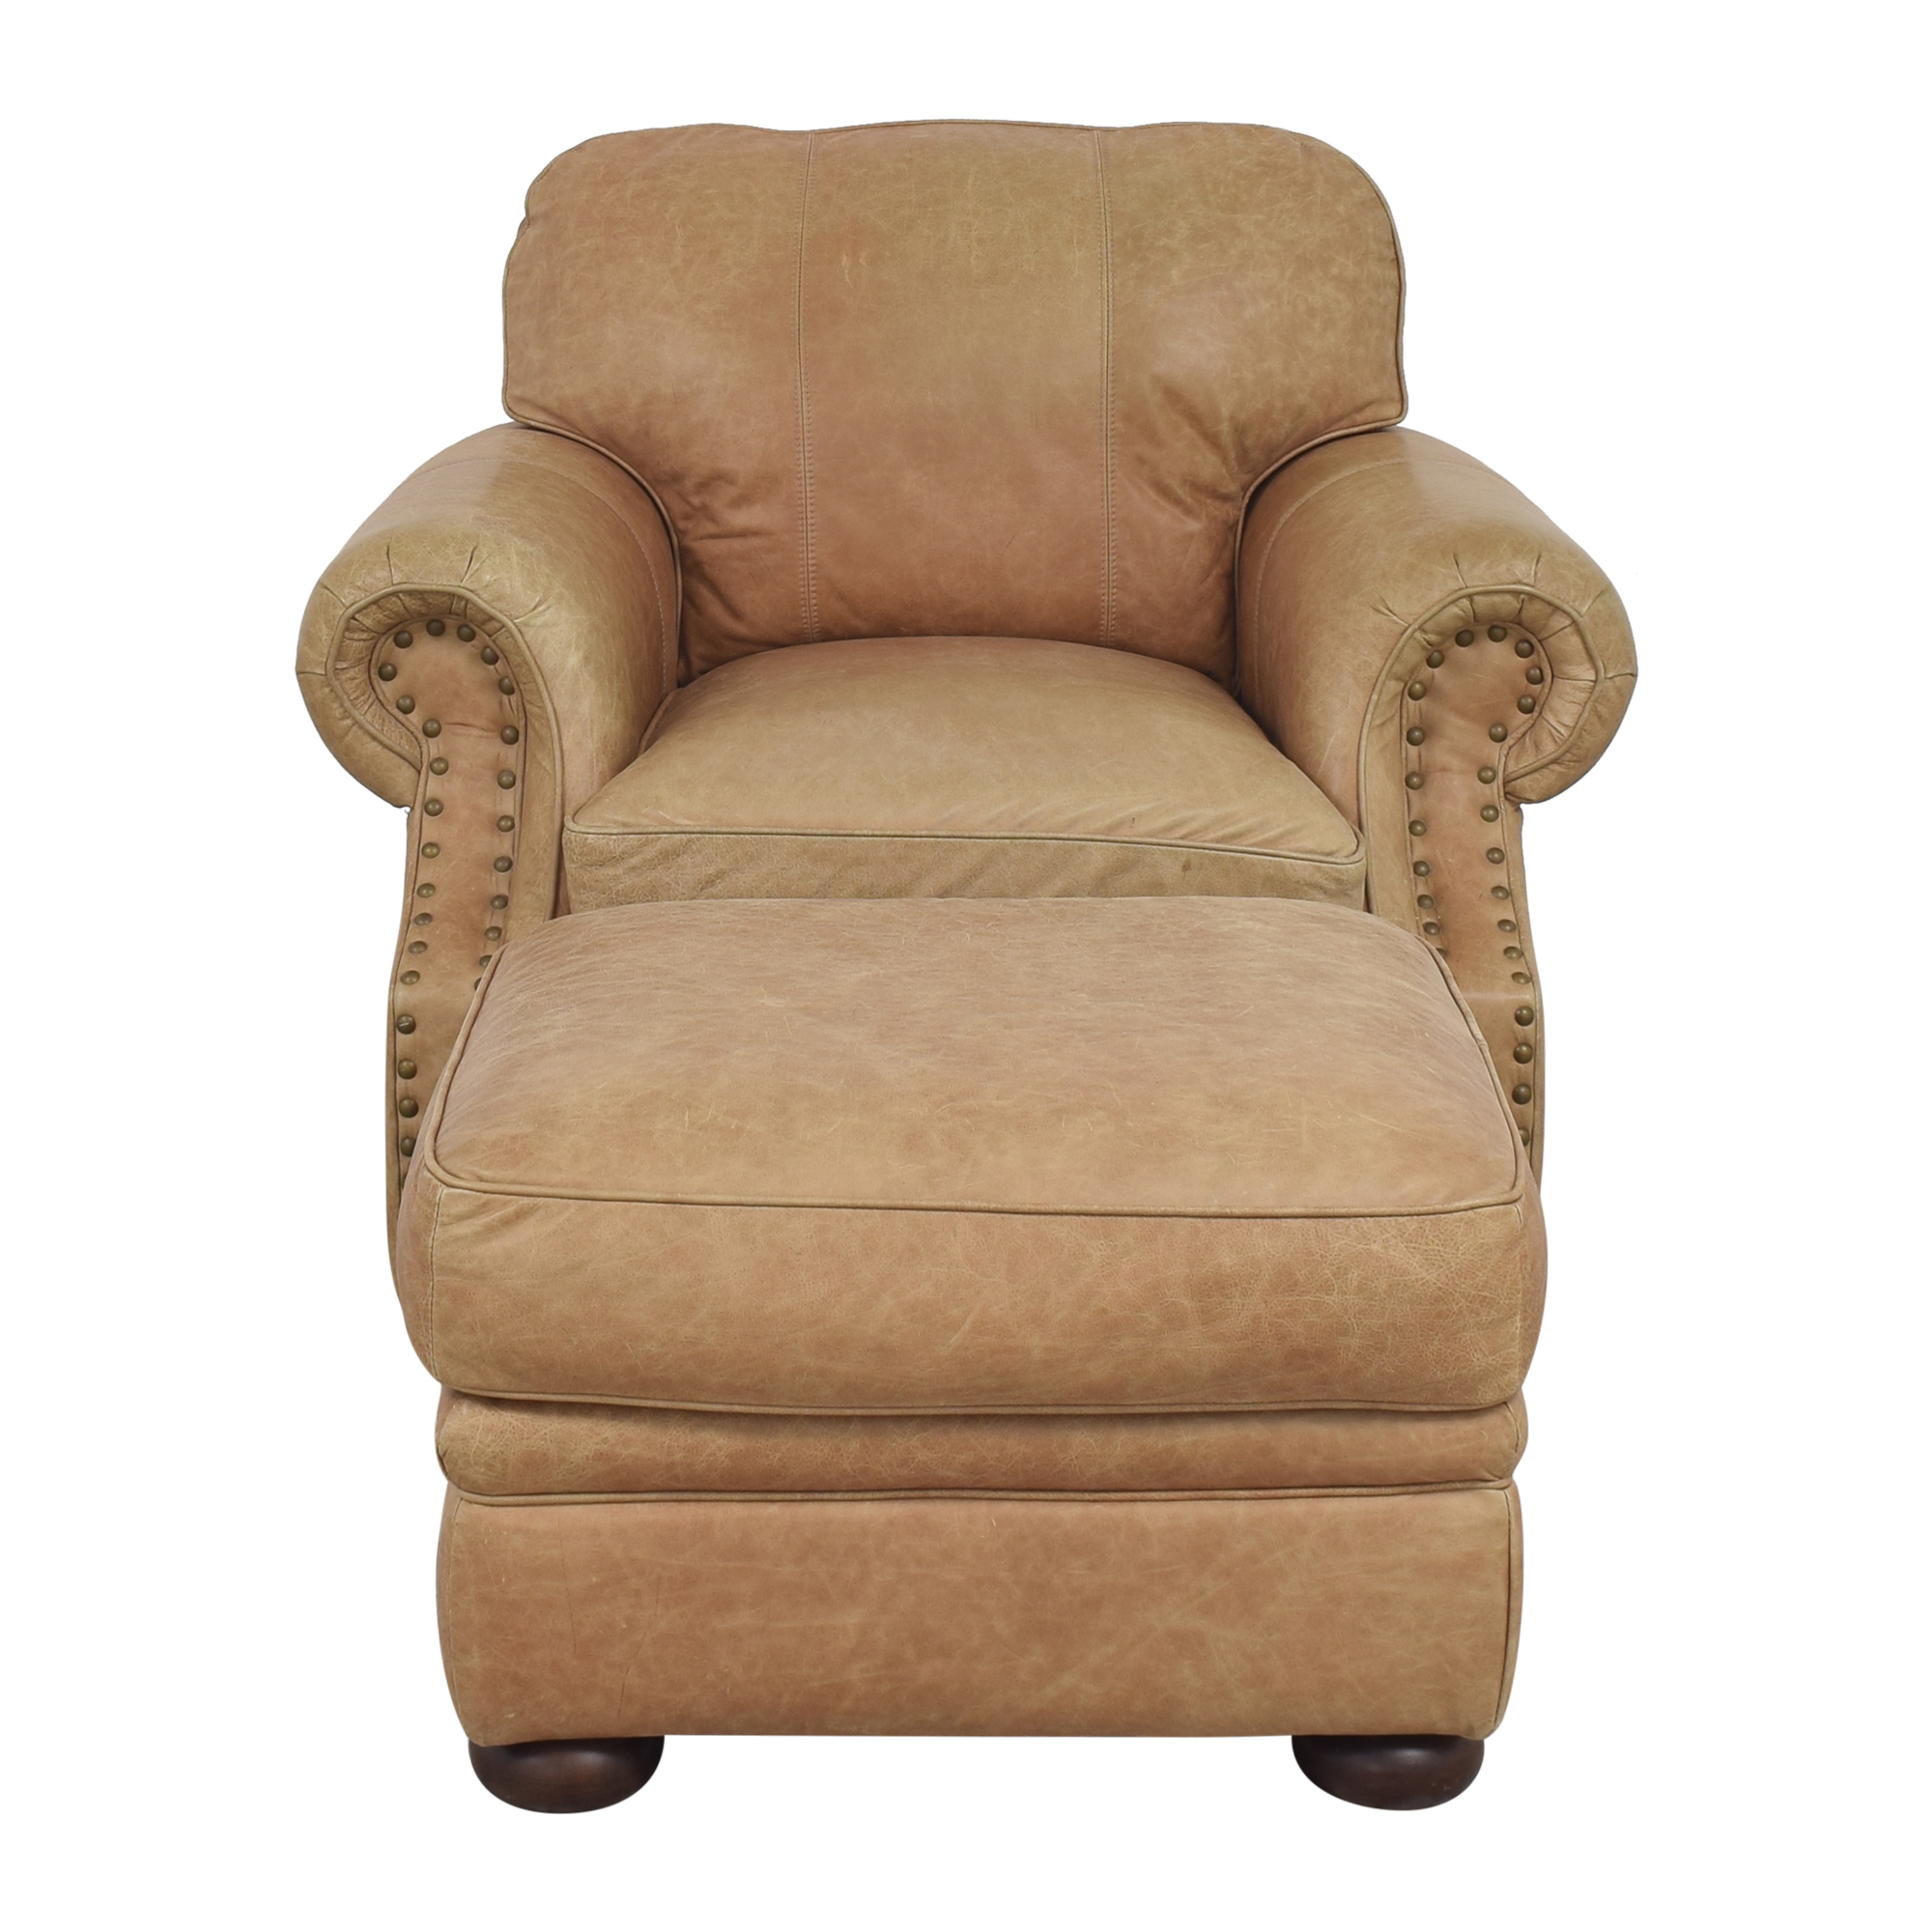 Ethan Allen Ethan Allen Roll Arm Chair with Ottoman dimensions